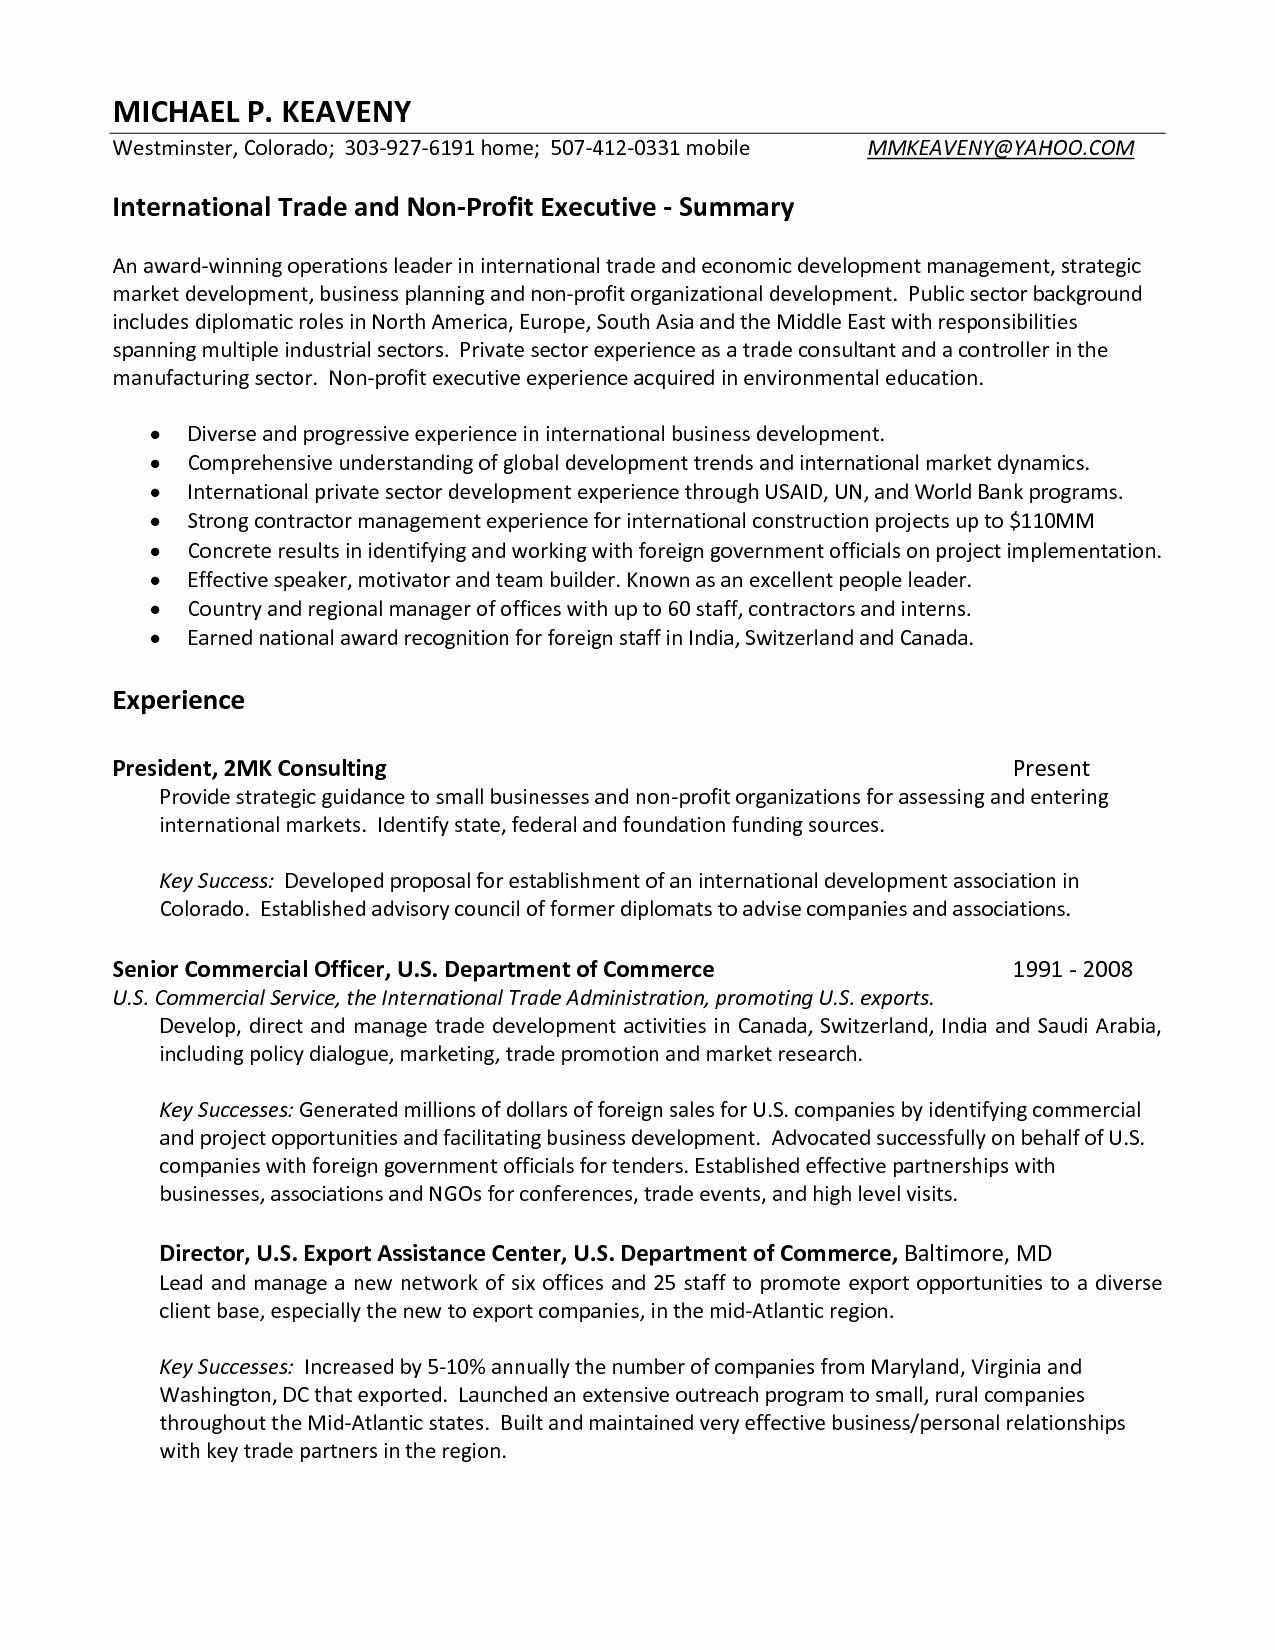 business resume examples 2018 example-Business Resume Examples Fresh Resume or Cv Unique American Resume Sample New Student Resume 0d 15-f